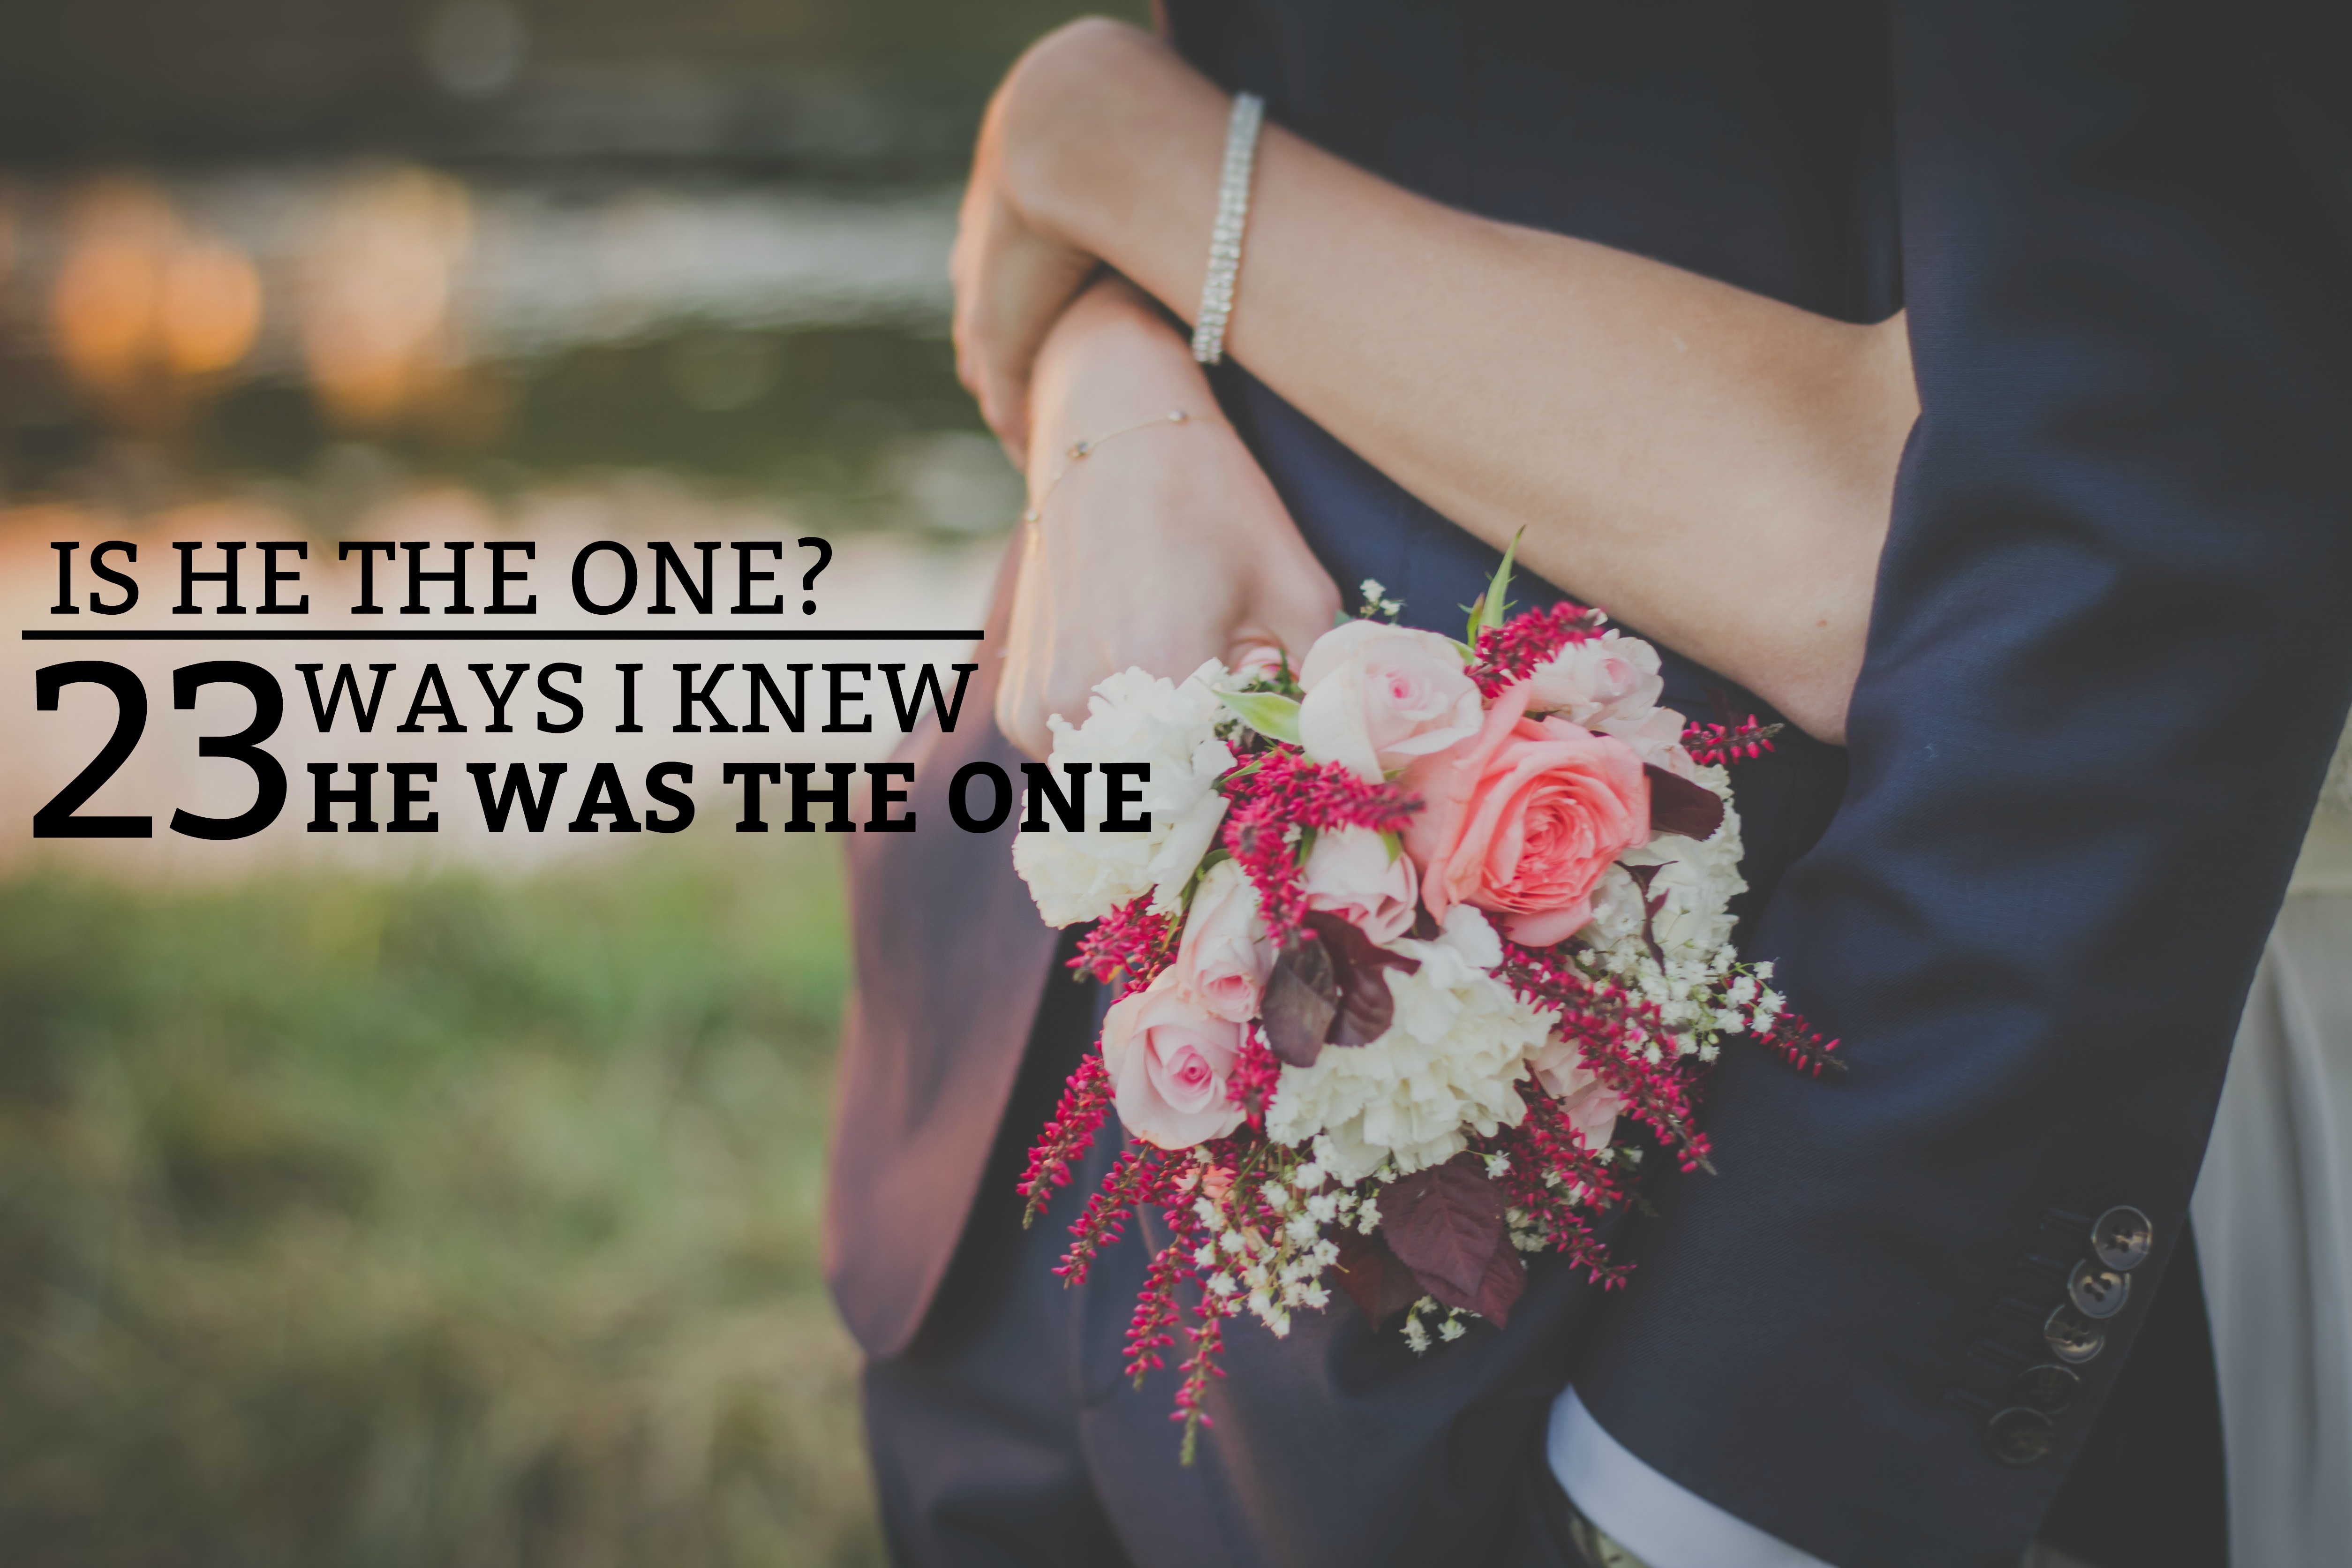 Is He the One? 23 Ways I Knew He Was the One - A guide to how I knew my husband was the man I would spend the rest of my life with. www.tradingaverage.com